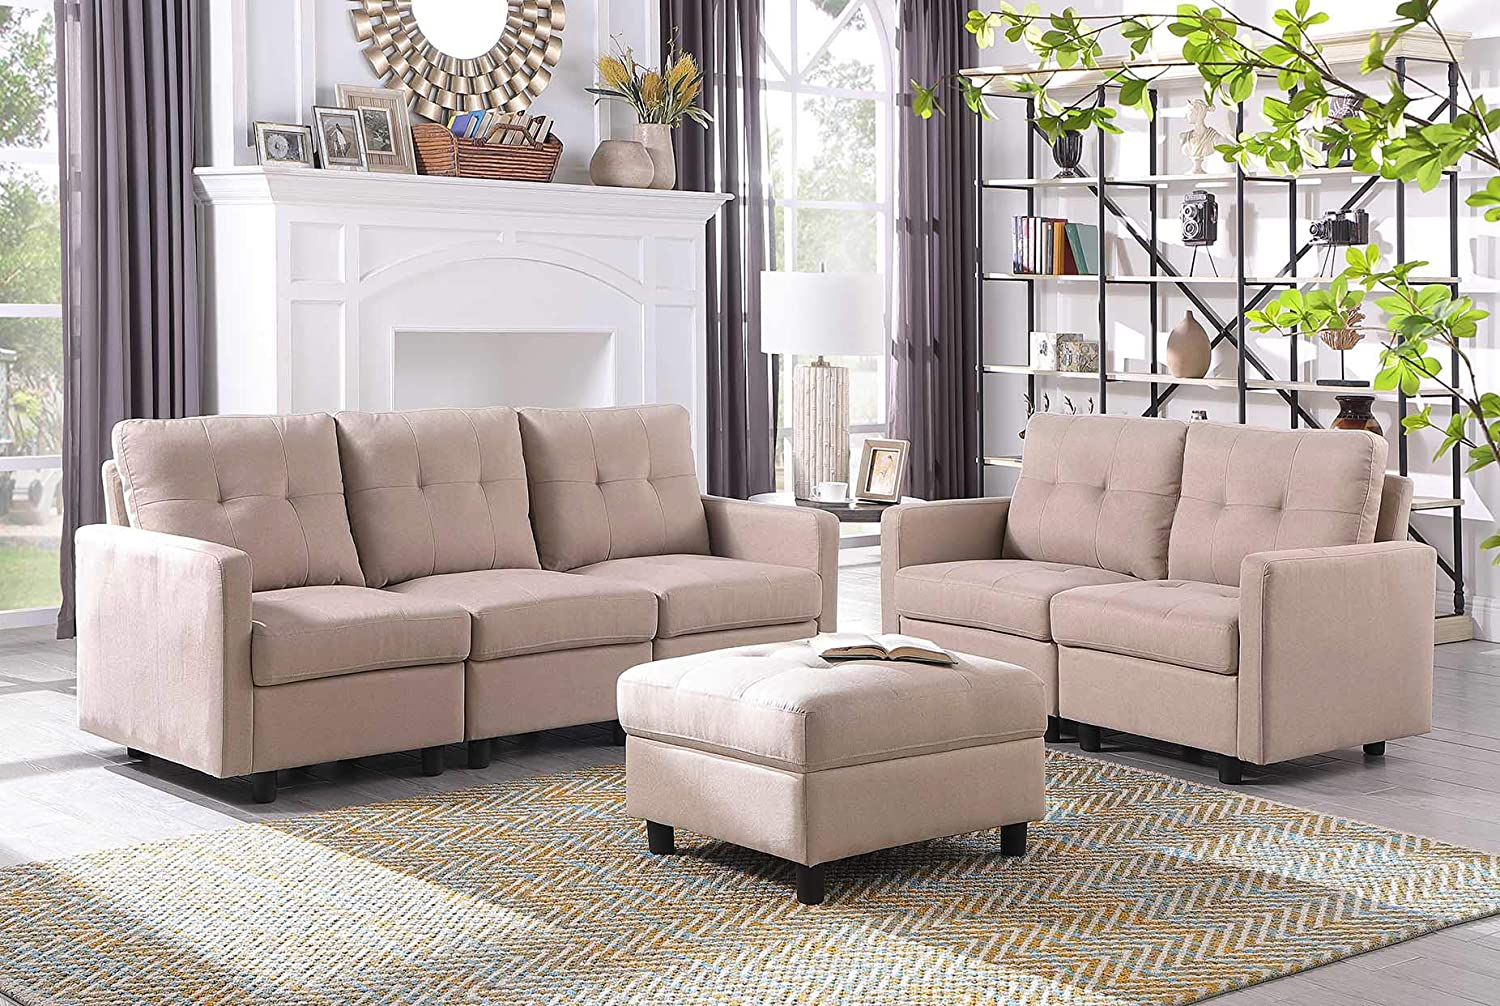 Modular Sectional Sofas Ranking TOP19 for Sofa+Ot Room Animer and price revision Loveseat+3Seats Living